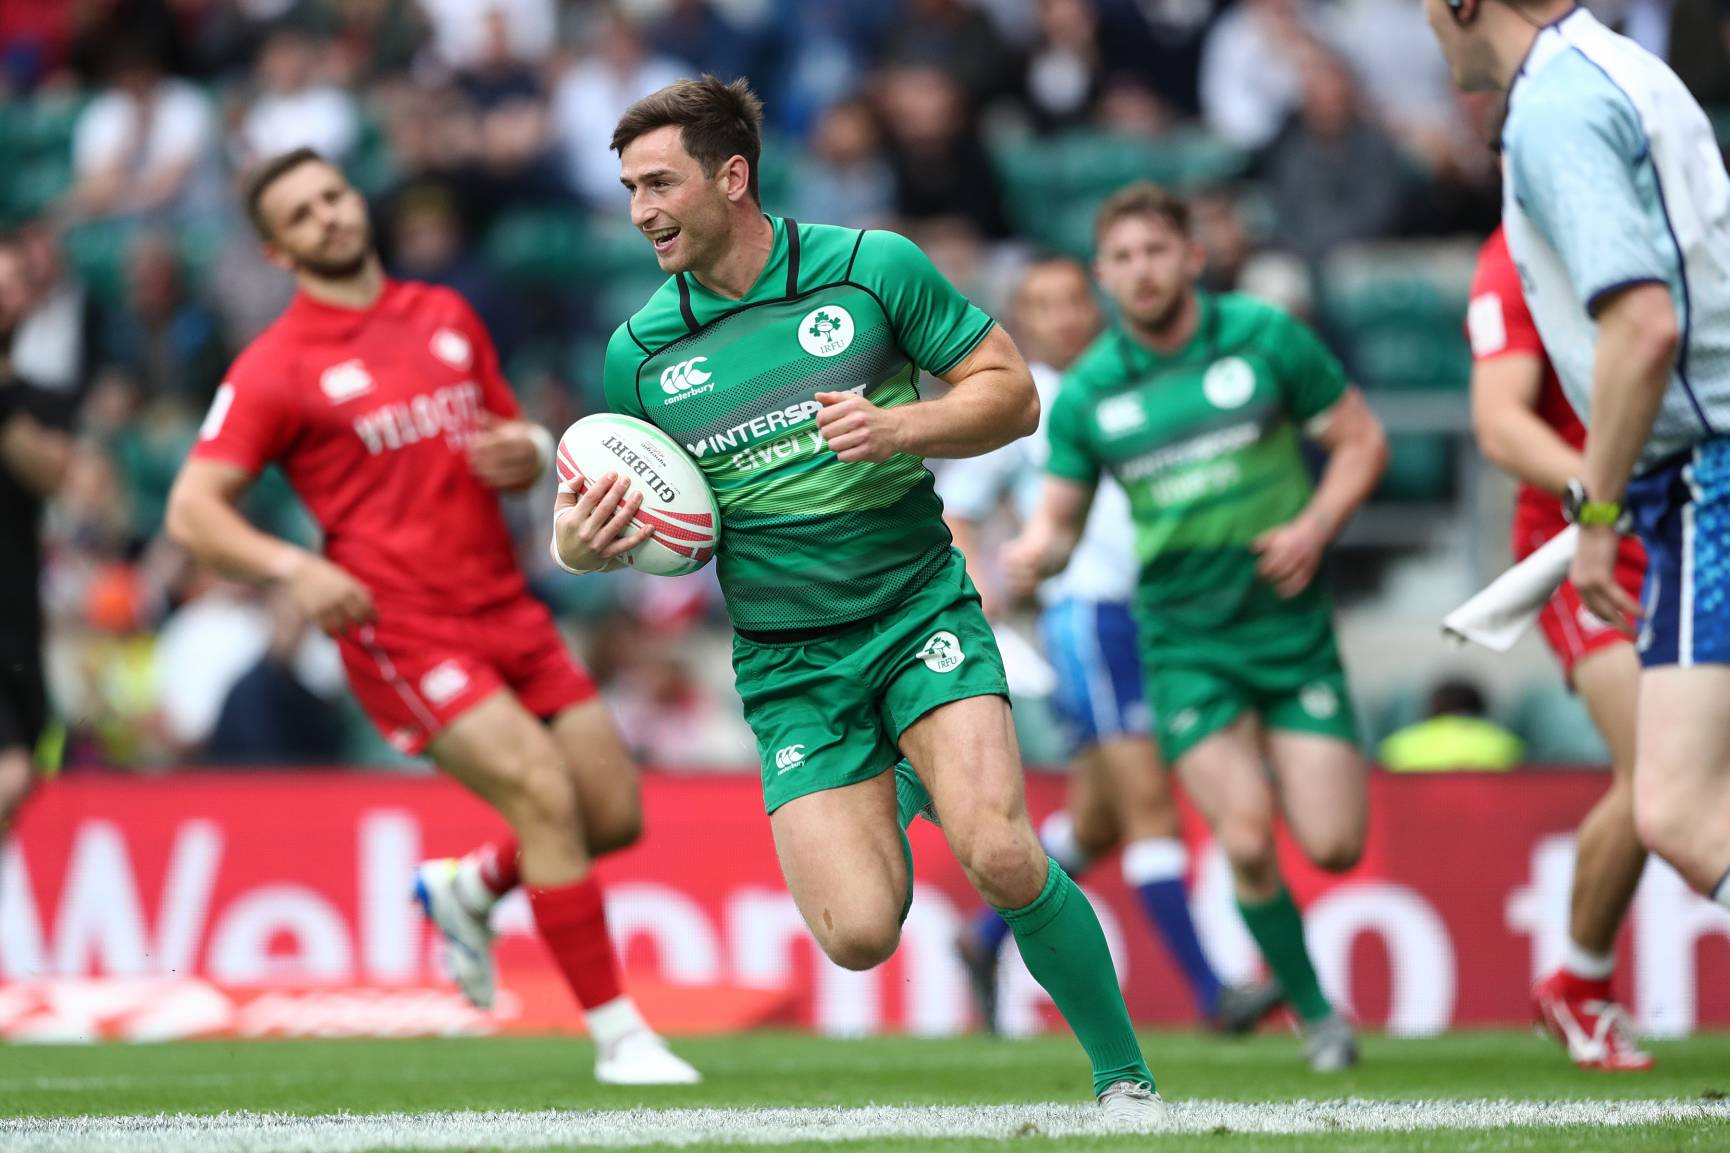 Ireland Men Make Their Mark On London Again With Sixth Place Finish